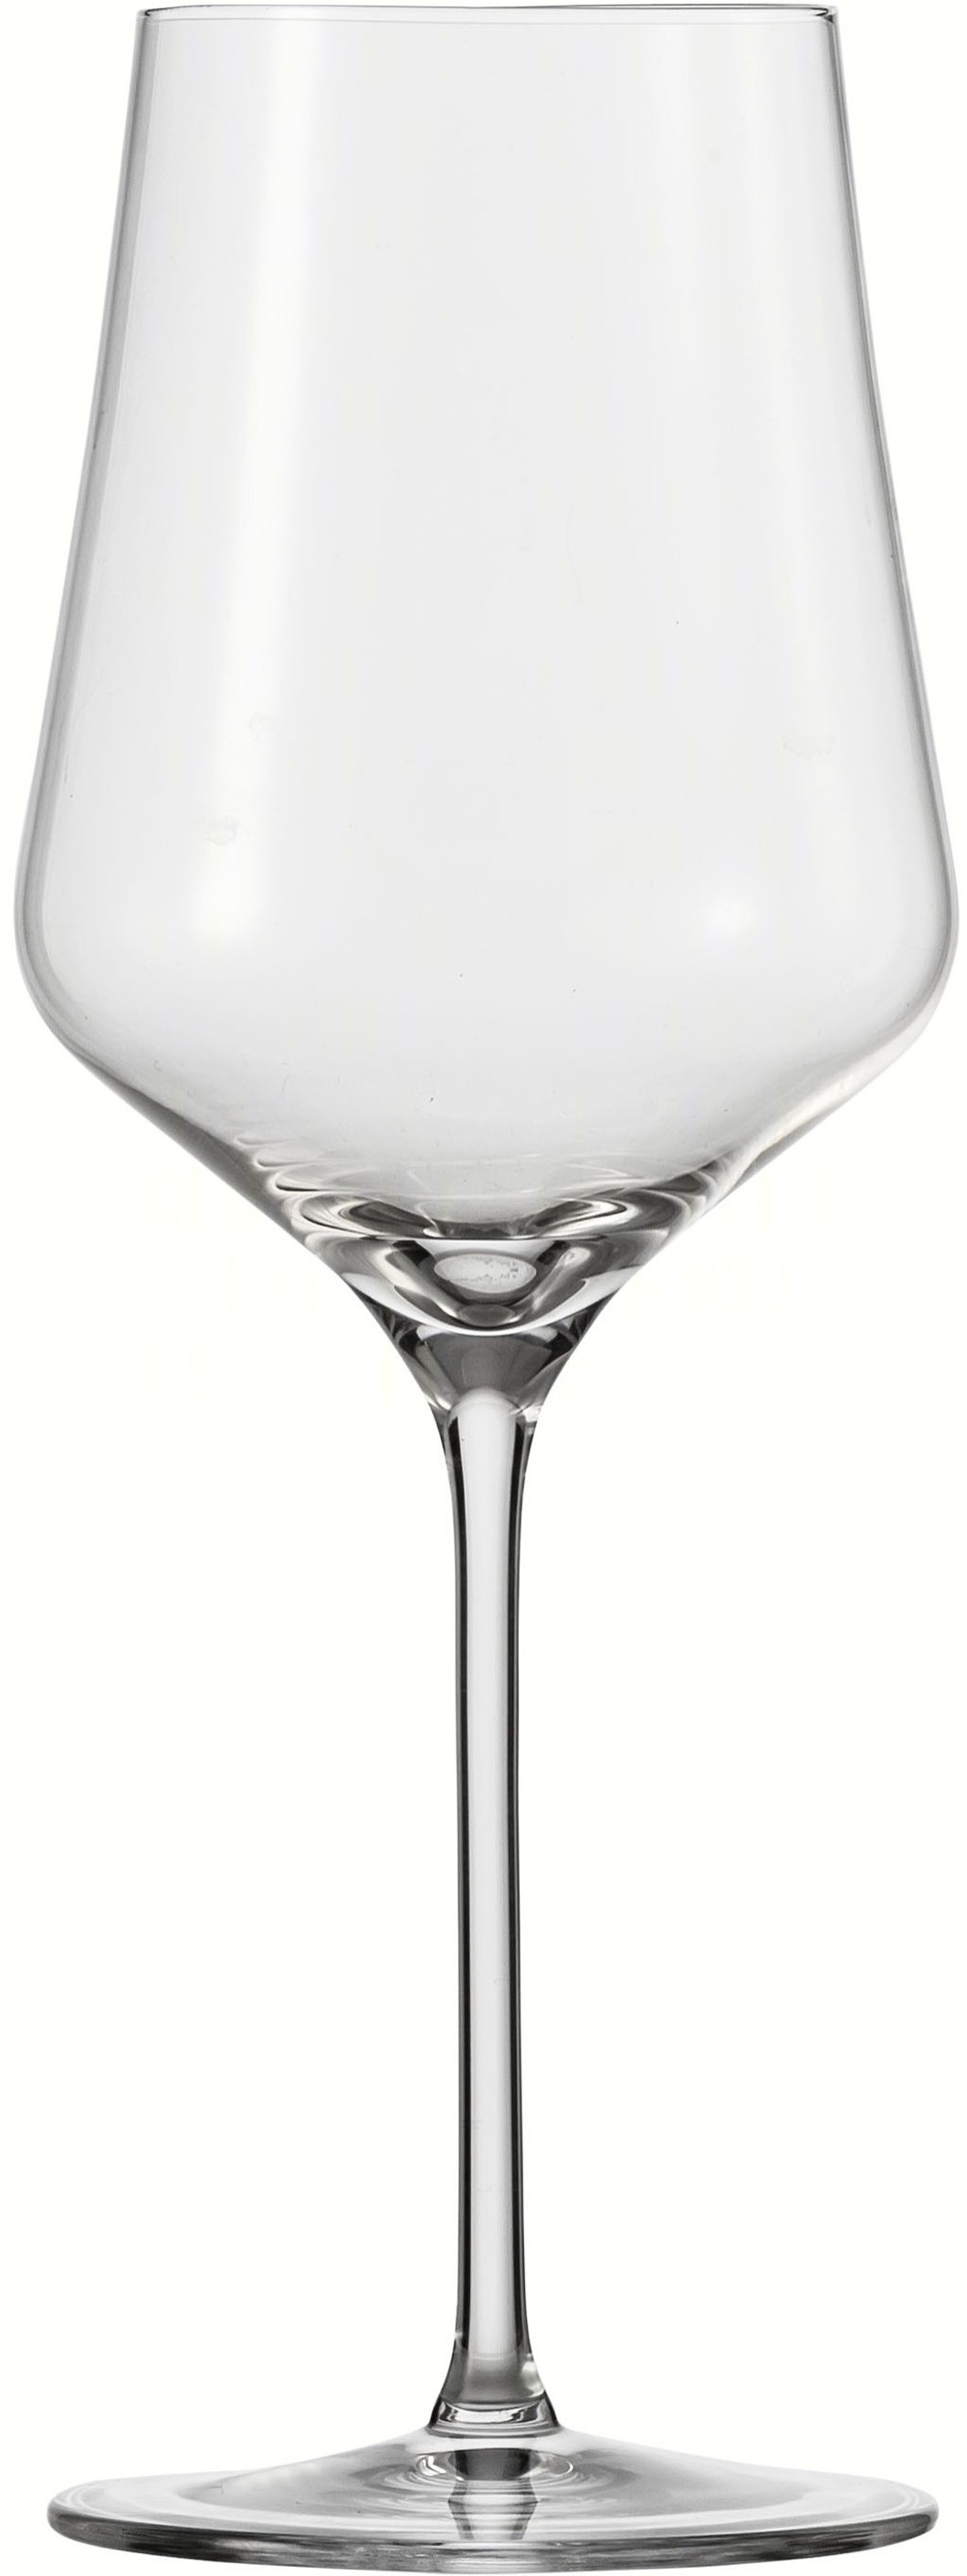 Sky SP- Red Wine Glass (Set of 2)